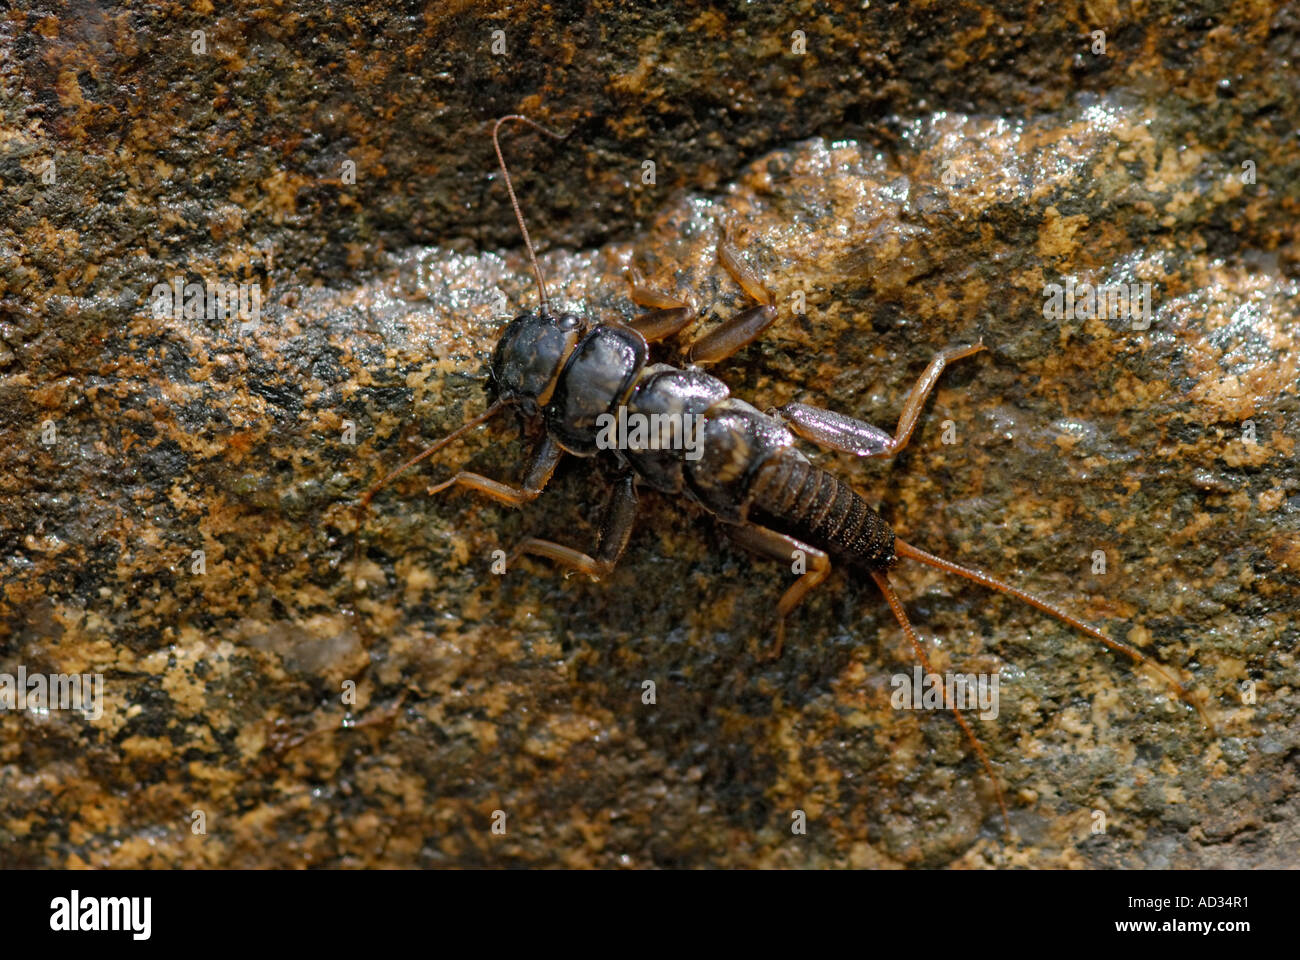 Stonefly, order Plecoptera, nymph on underside of rock from a stream Stock Photo